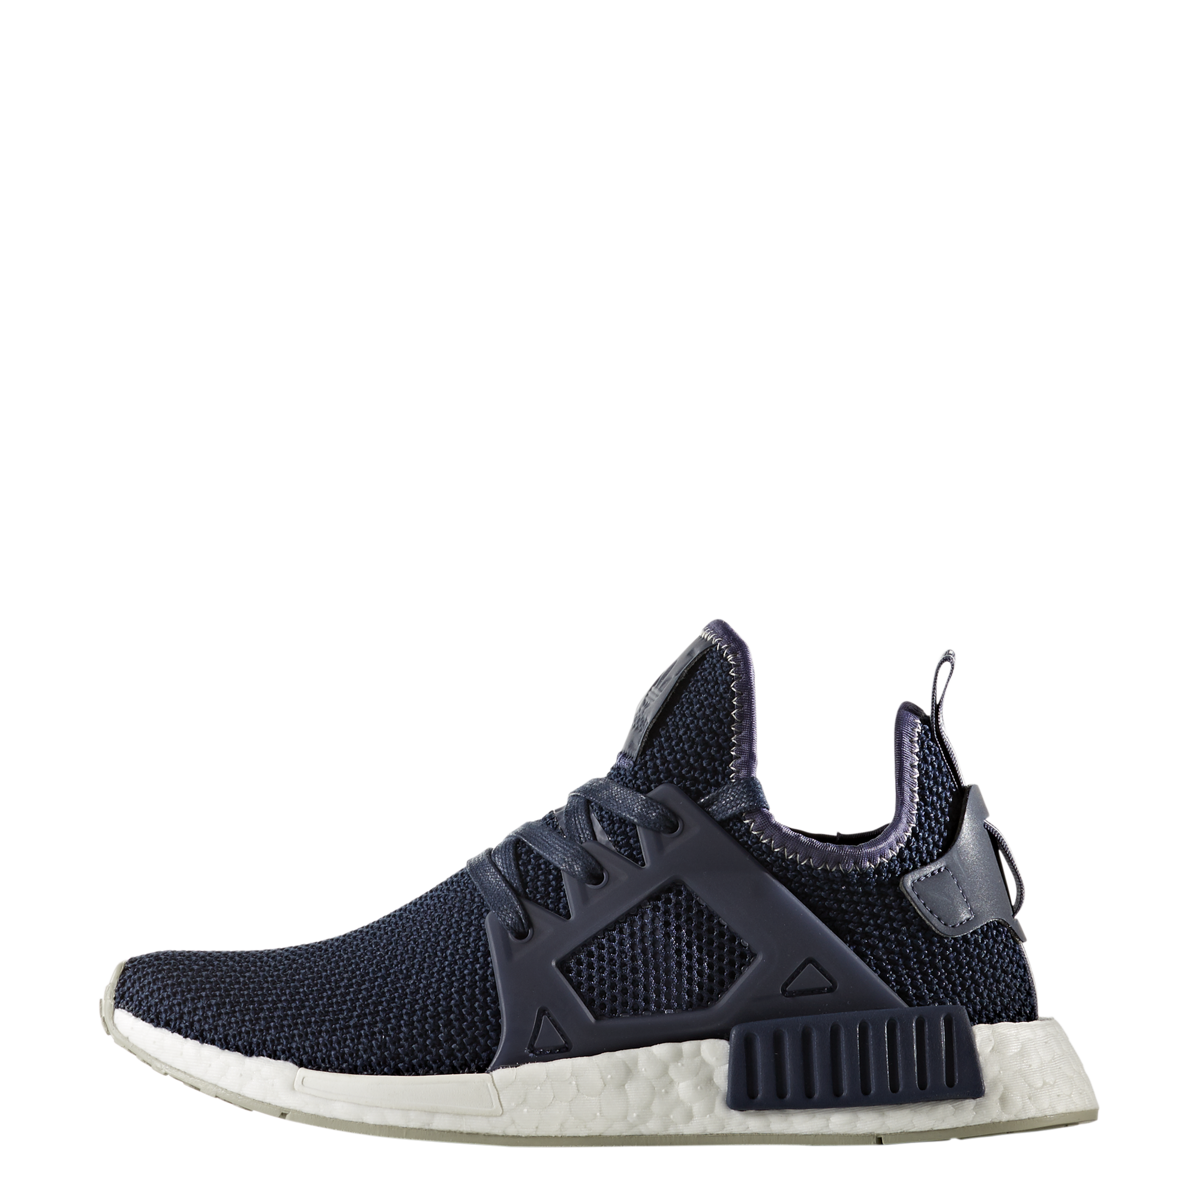 6135df1282249 ... Adidas NMD XR1 Navy White - BY9819 Clicca per espandere ...